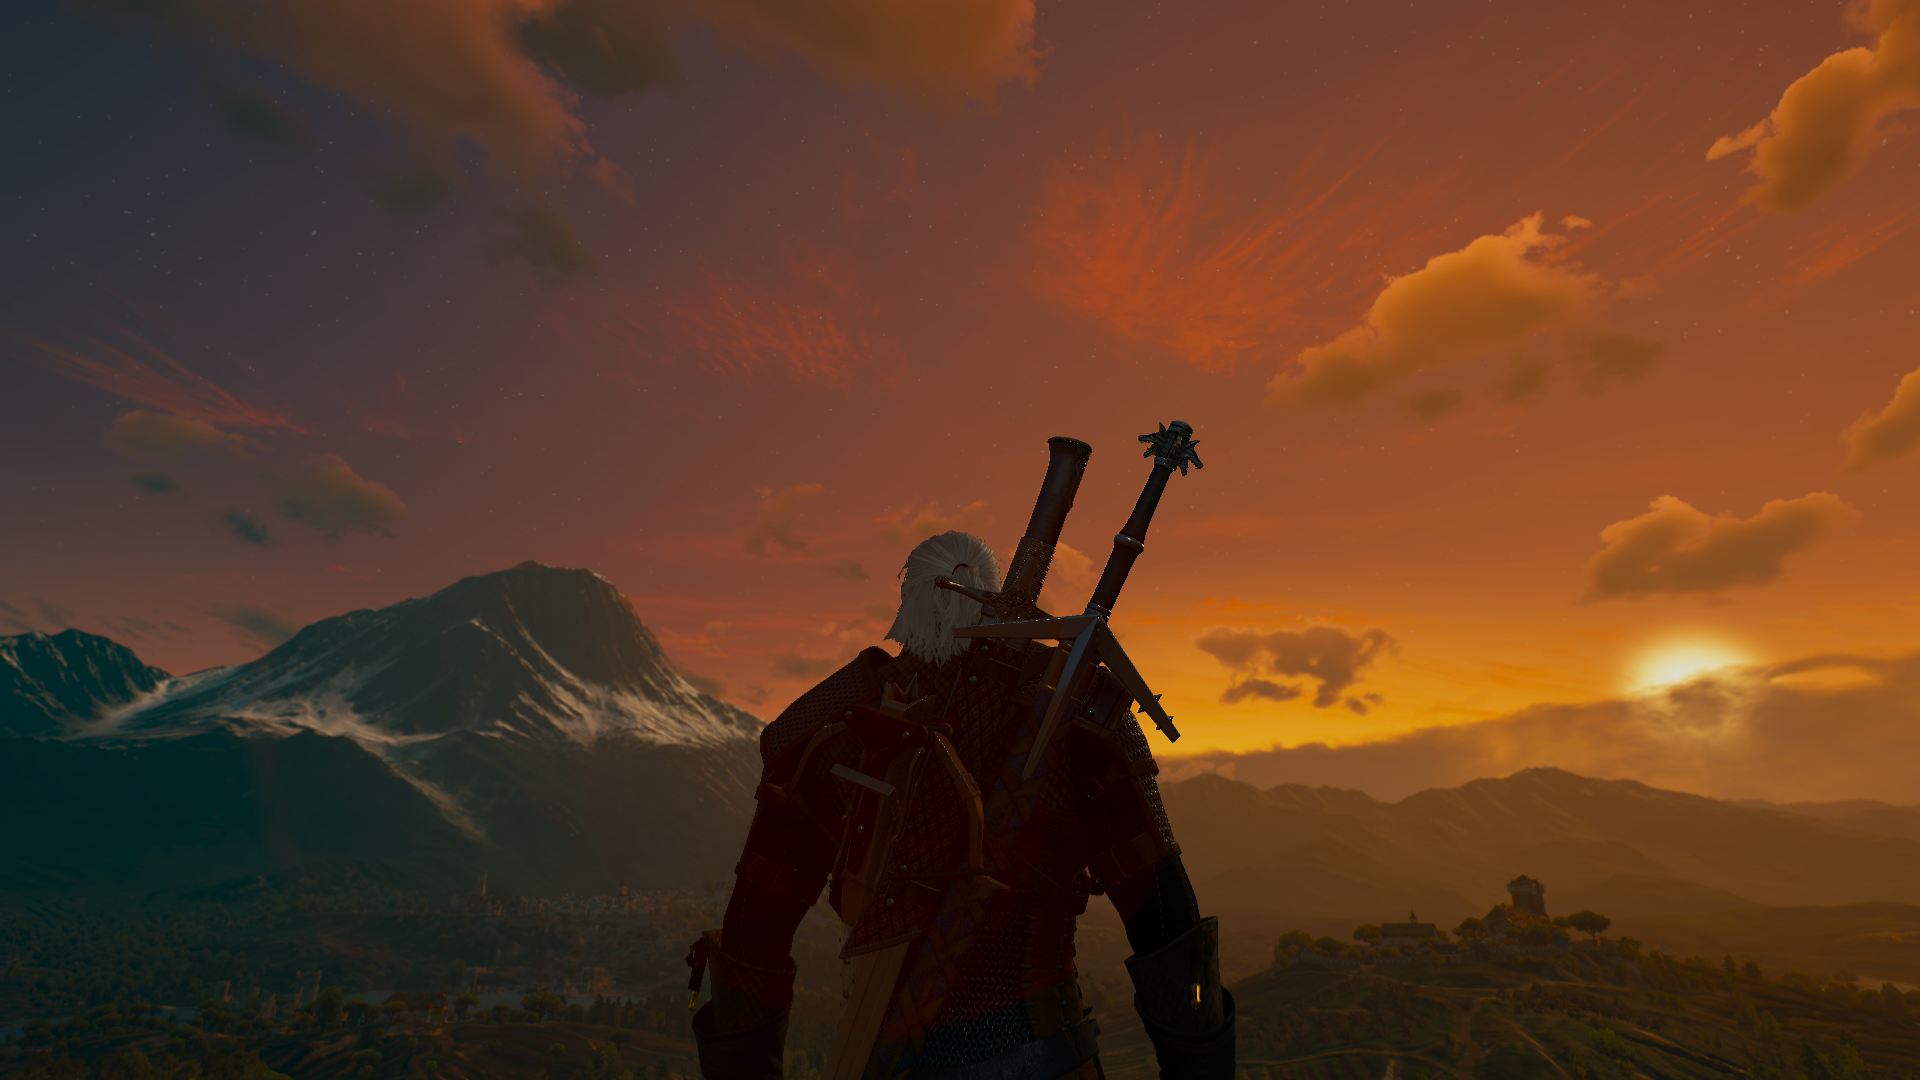 The Witcher 3 06.01.2019 00_19_11.png - Witcher 3: Wild Hunt, the